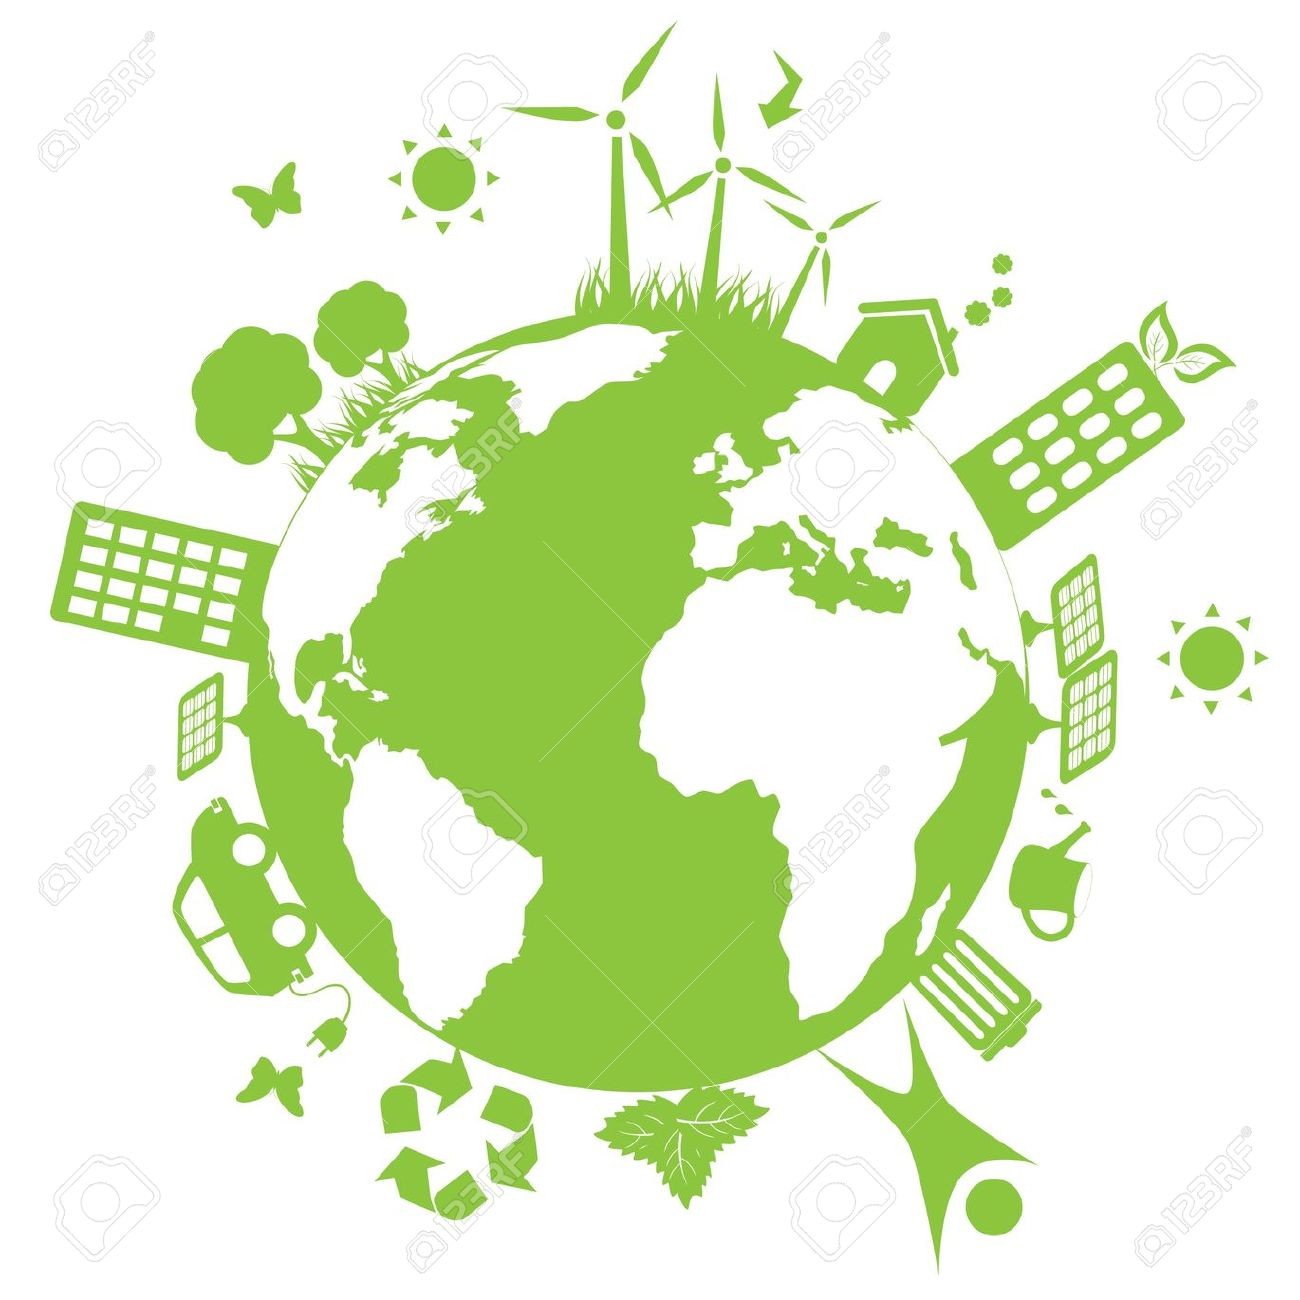 Write a report on world environment day